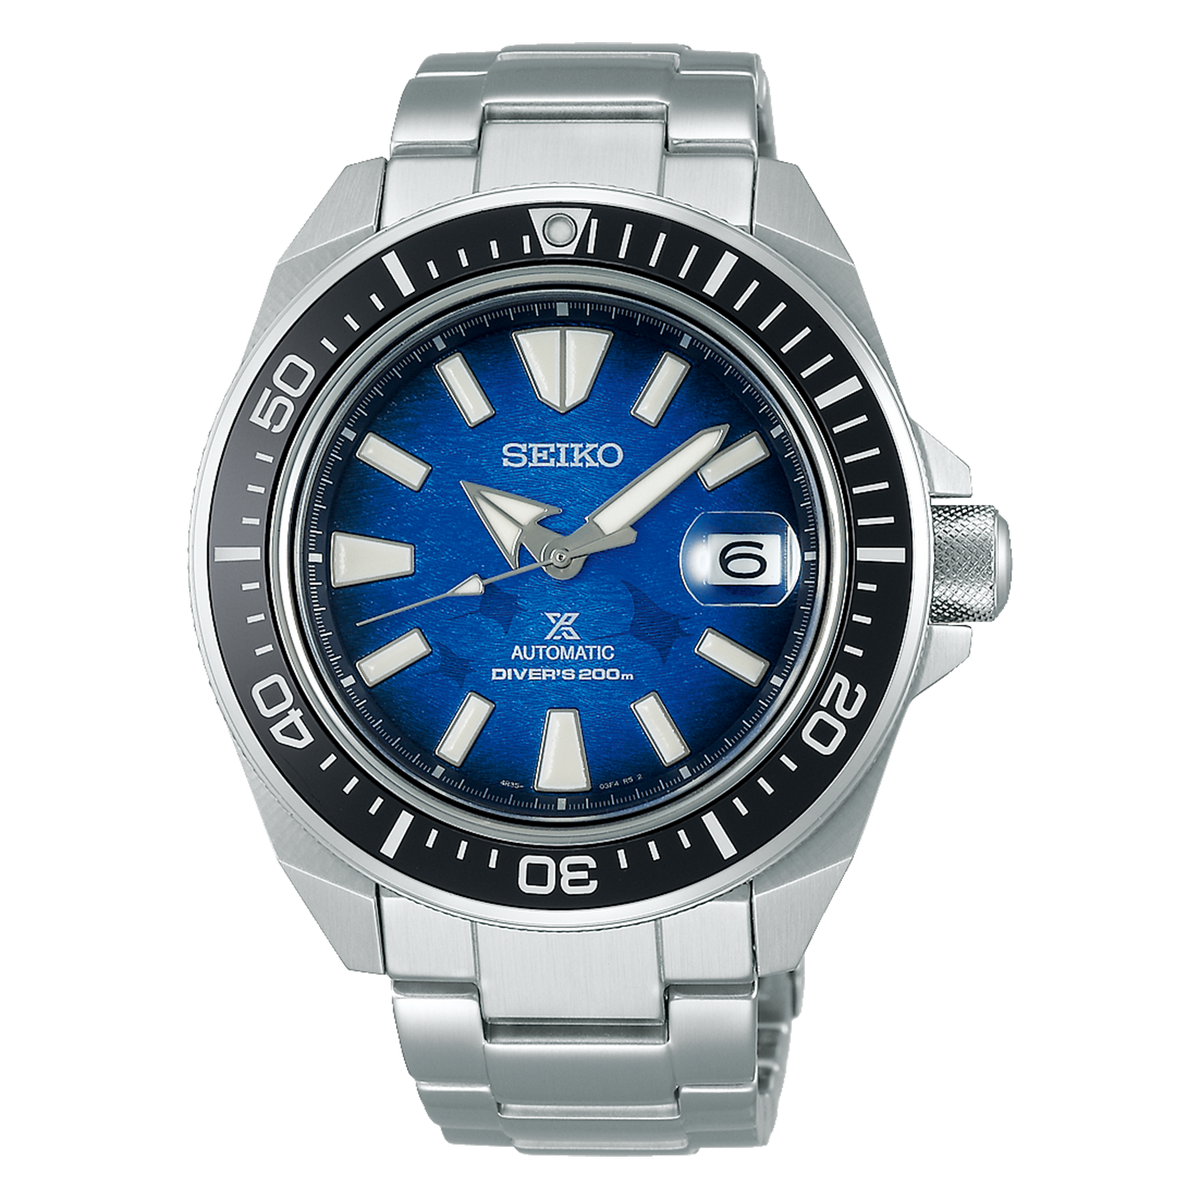 Seiko PROSPEX King Samurai - Save The Ocean Manta Ray Edition